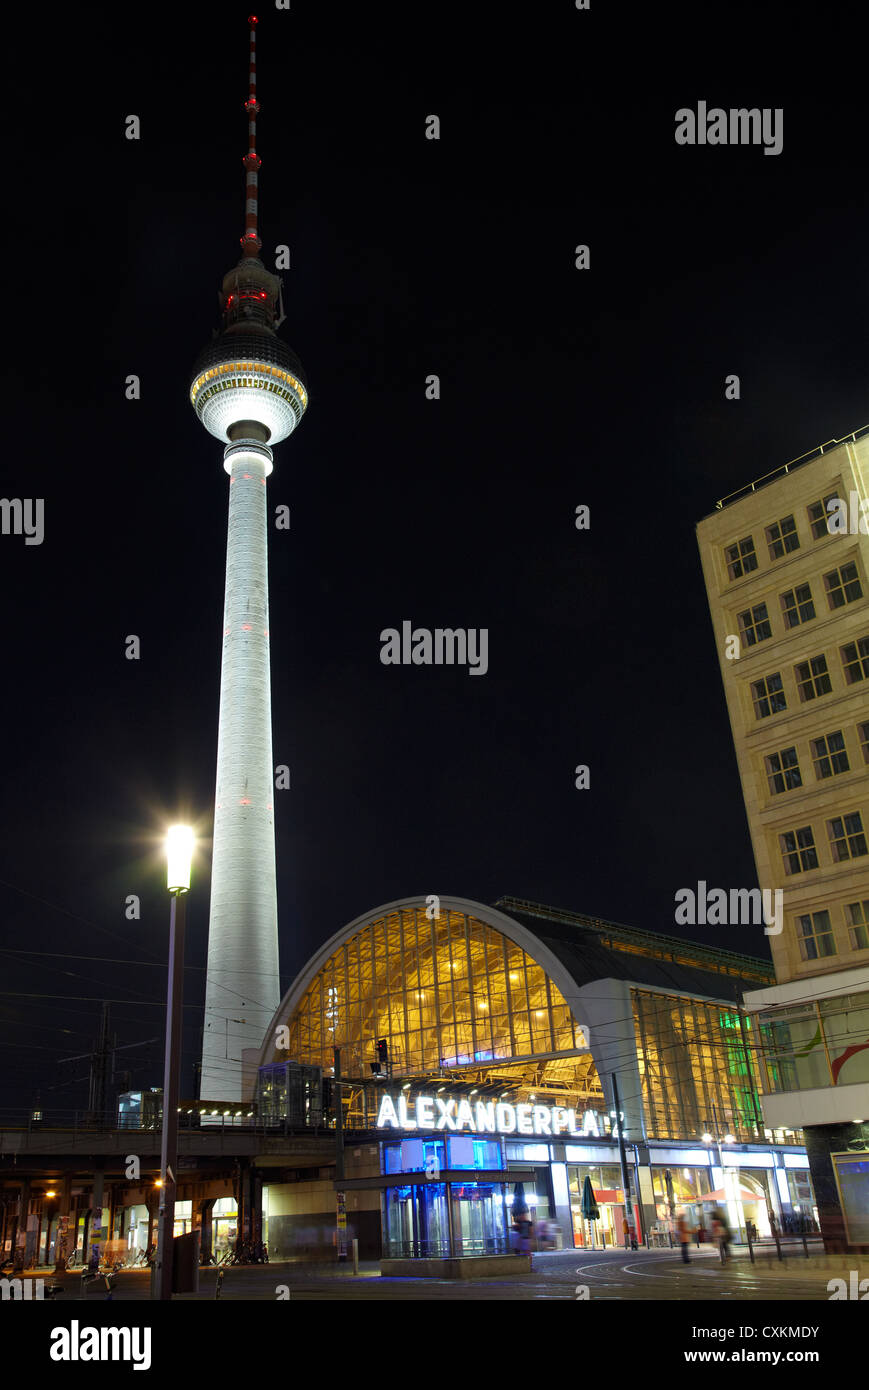 Alexanderplatz, Tv Tower at night, Berlin Stock Photo